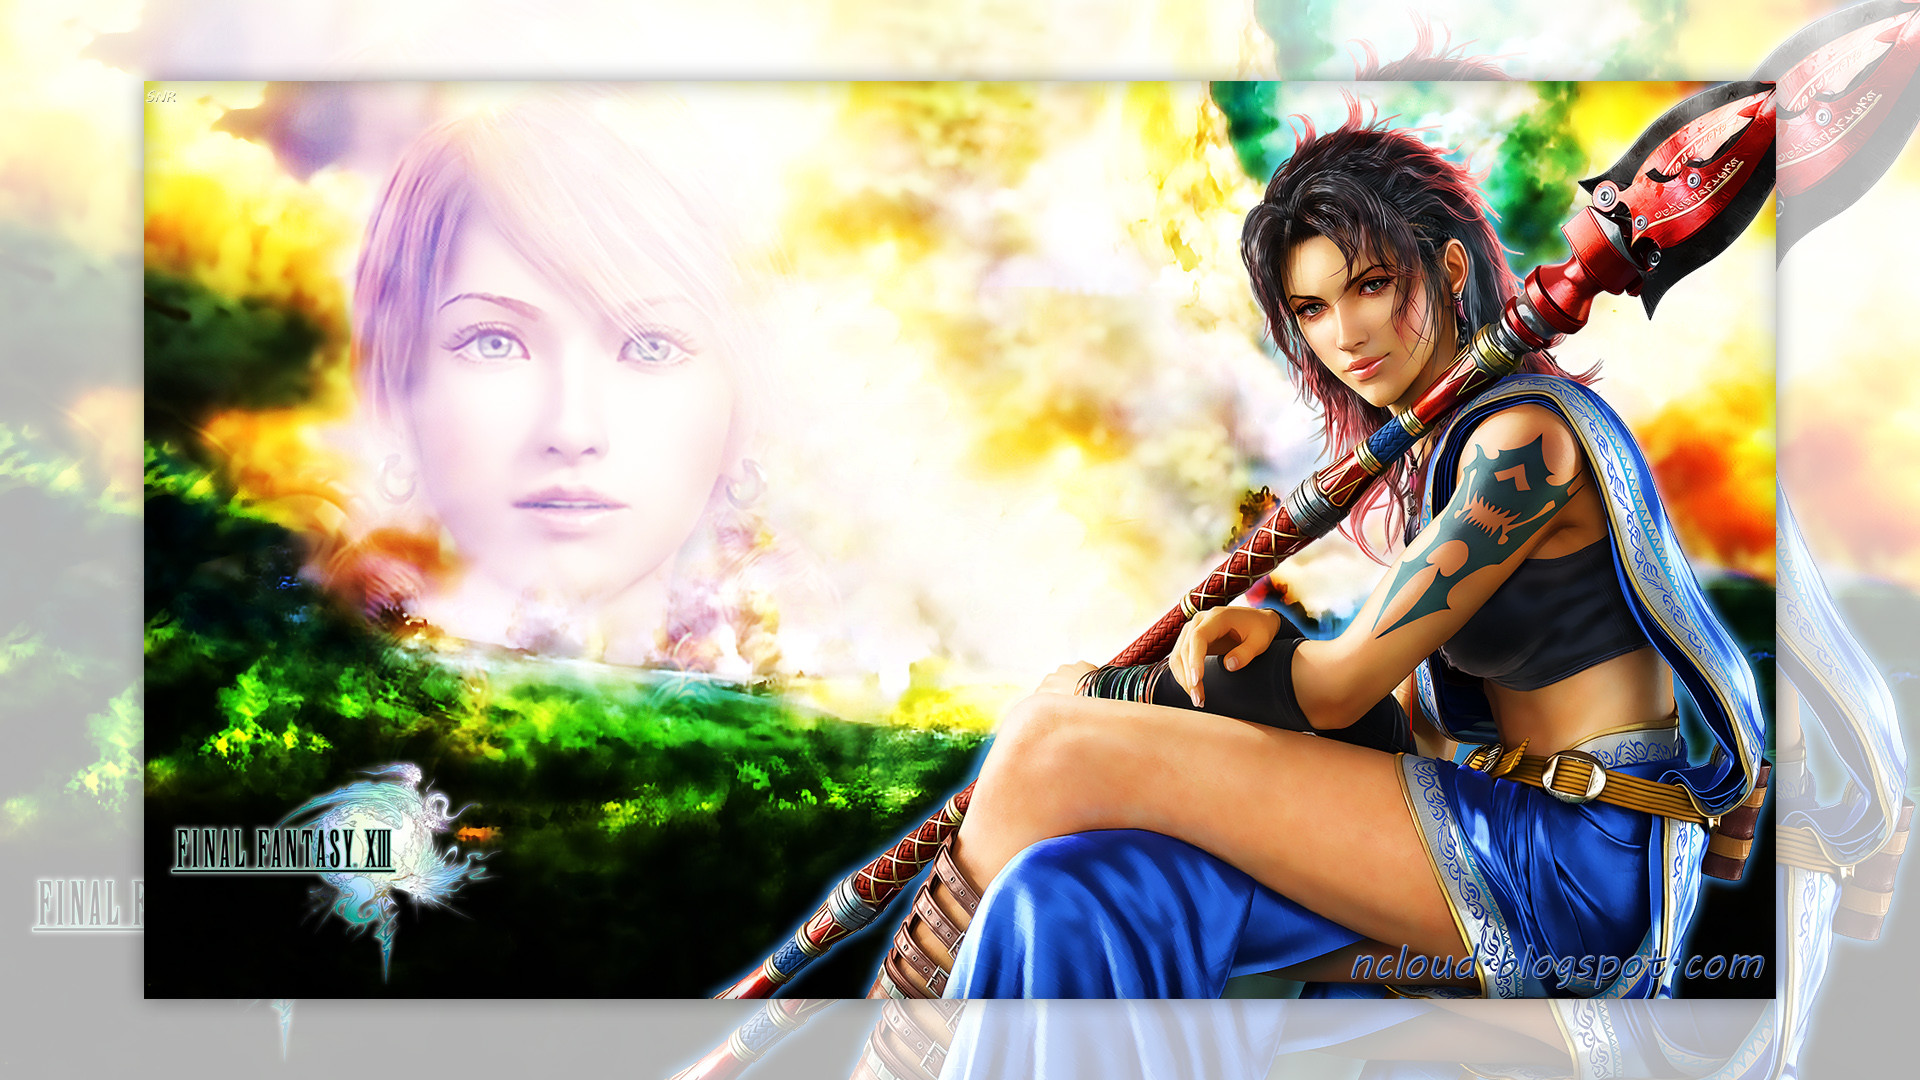 1920x1080 My Final Fantasy XIII Fang and Vanille Wallpaper